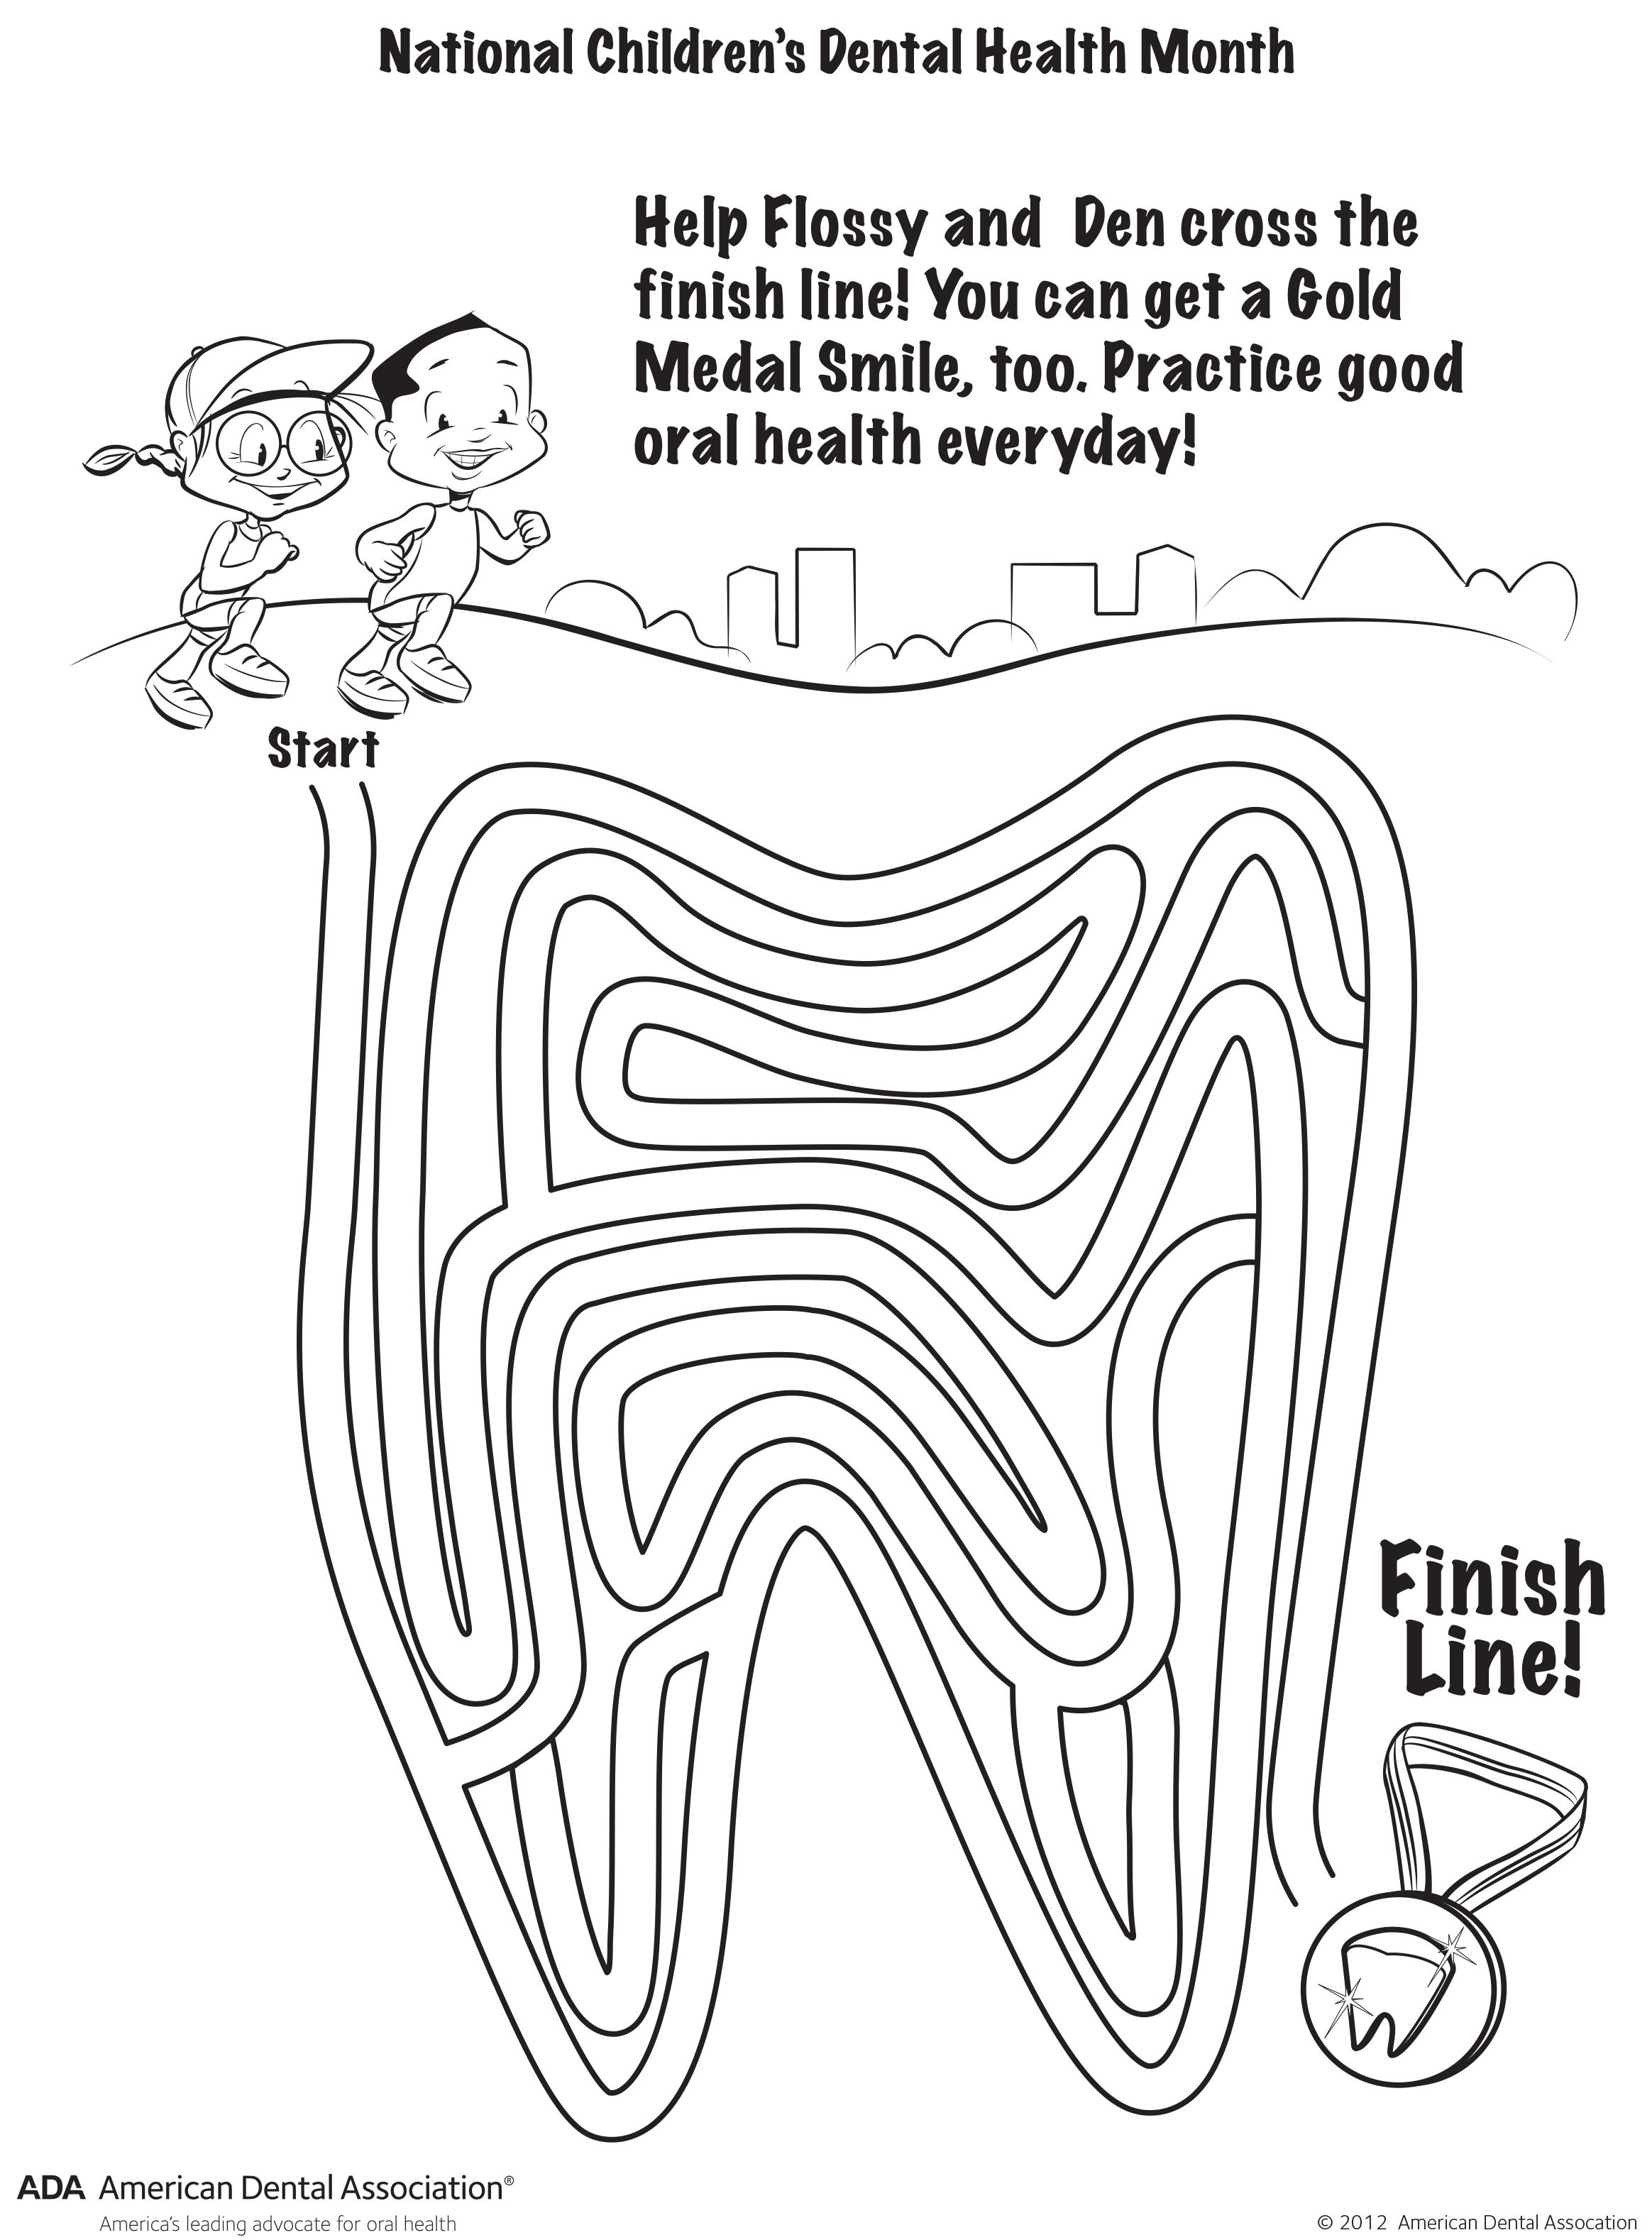 Practice Good Oral Health Every Day